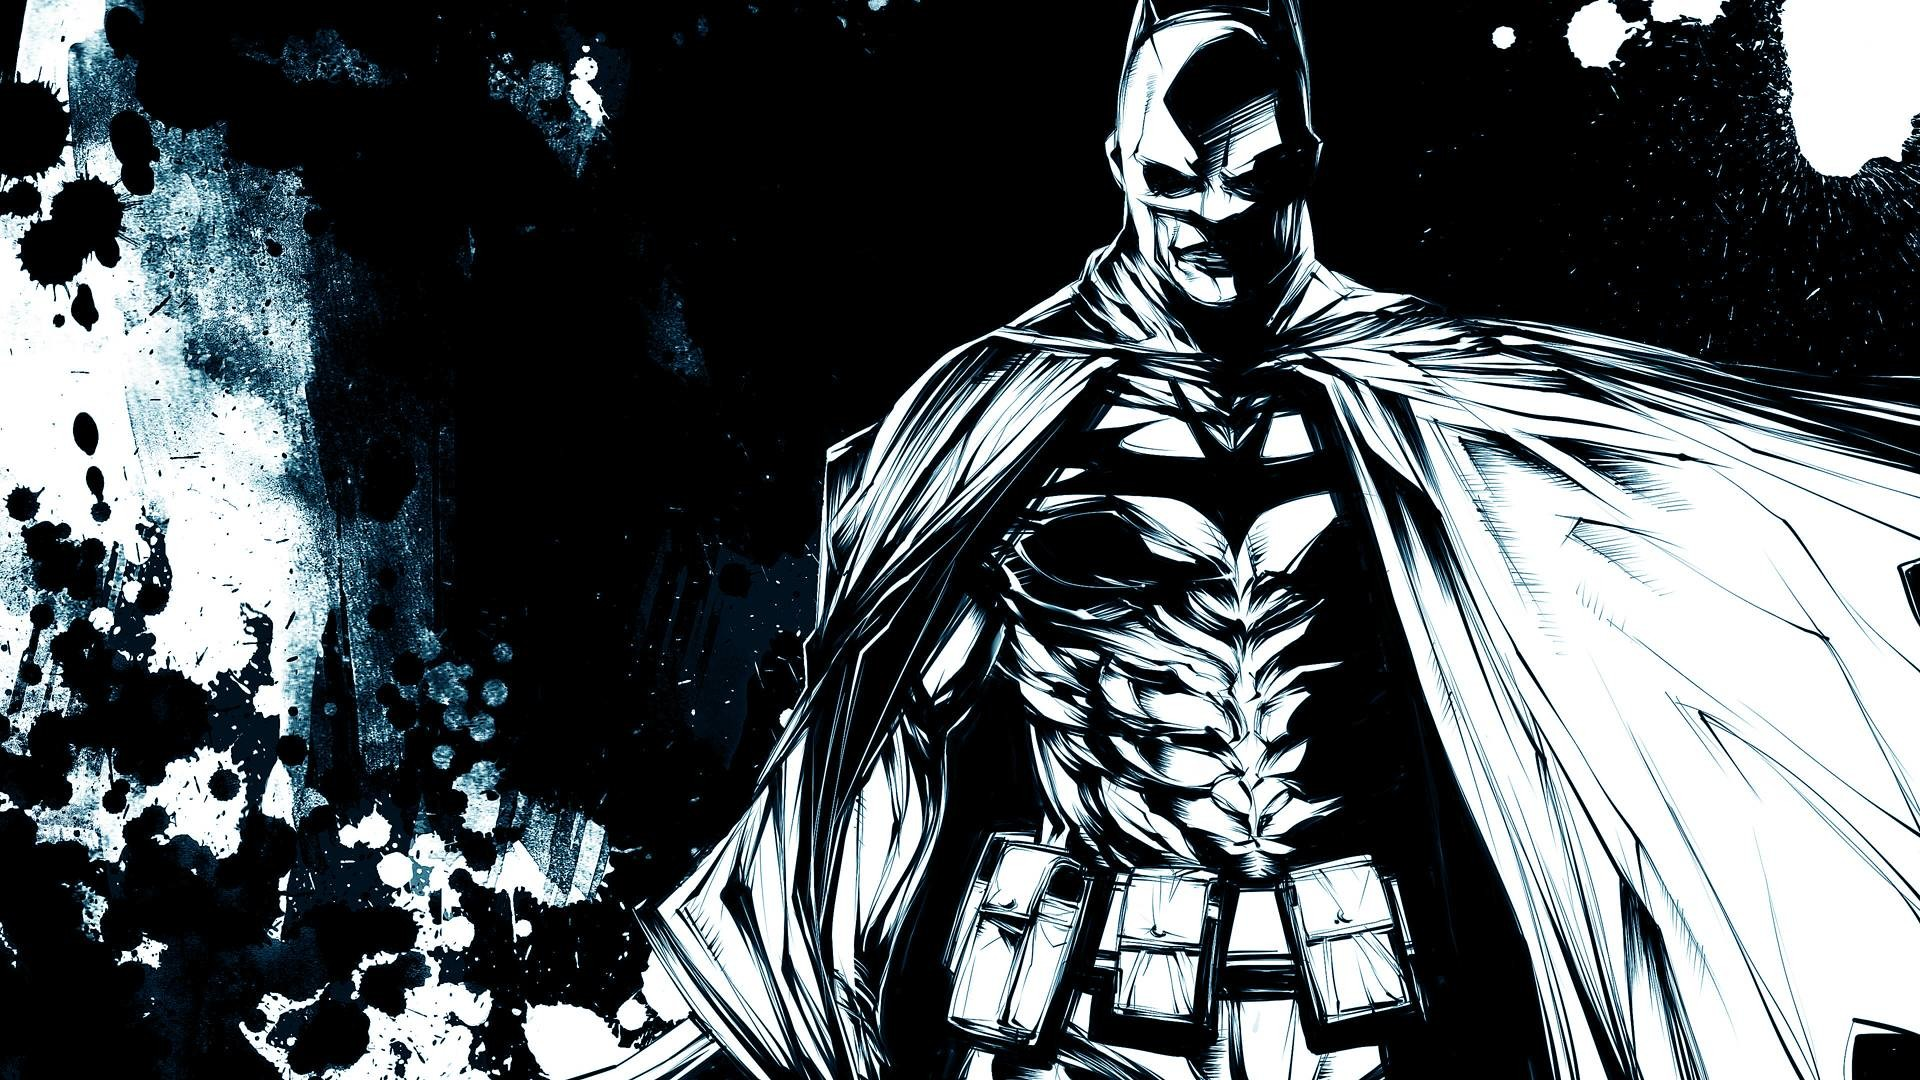 1920x1080 best Batman Comic Wallpaper ideas on Pinterest Batman | HD Wallpapers |  Pinterest | Batman comic wallpaper, Hd wallpaper and Wallpaper